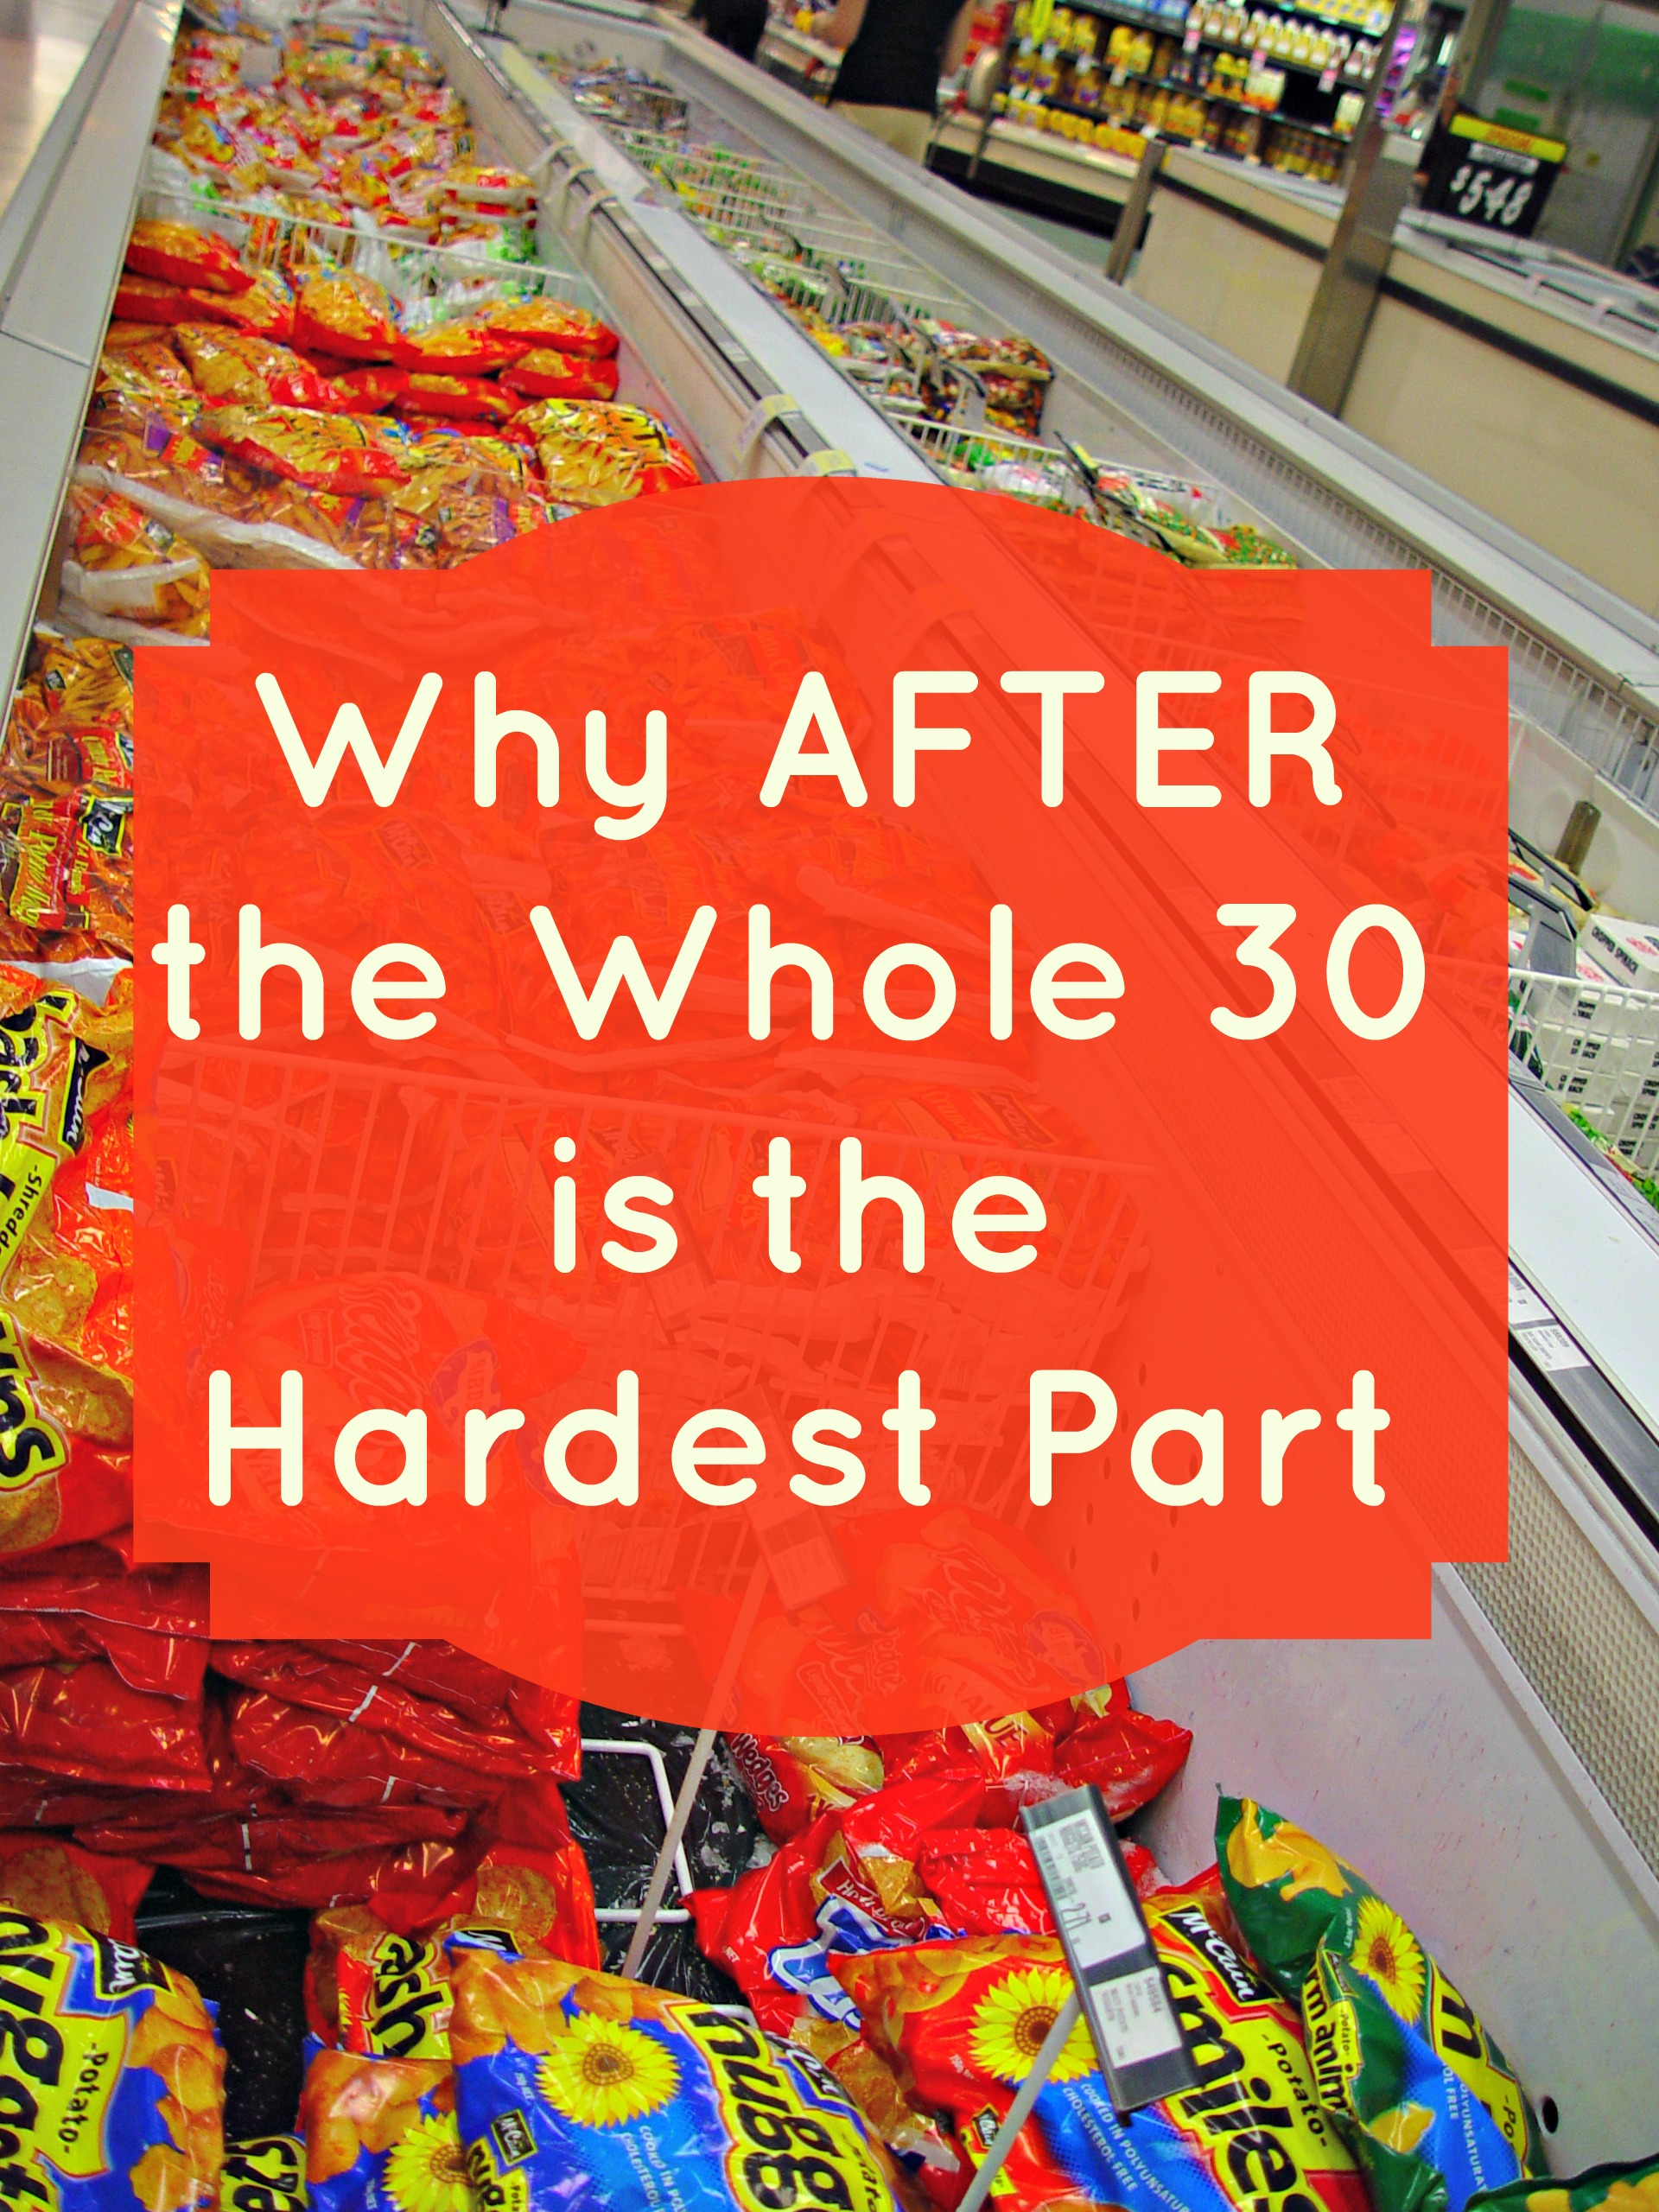 Why After the Whole 30 is the Hardest Part